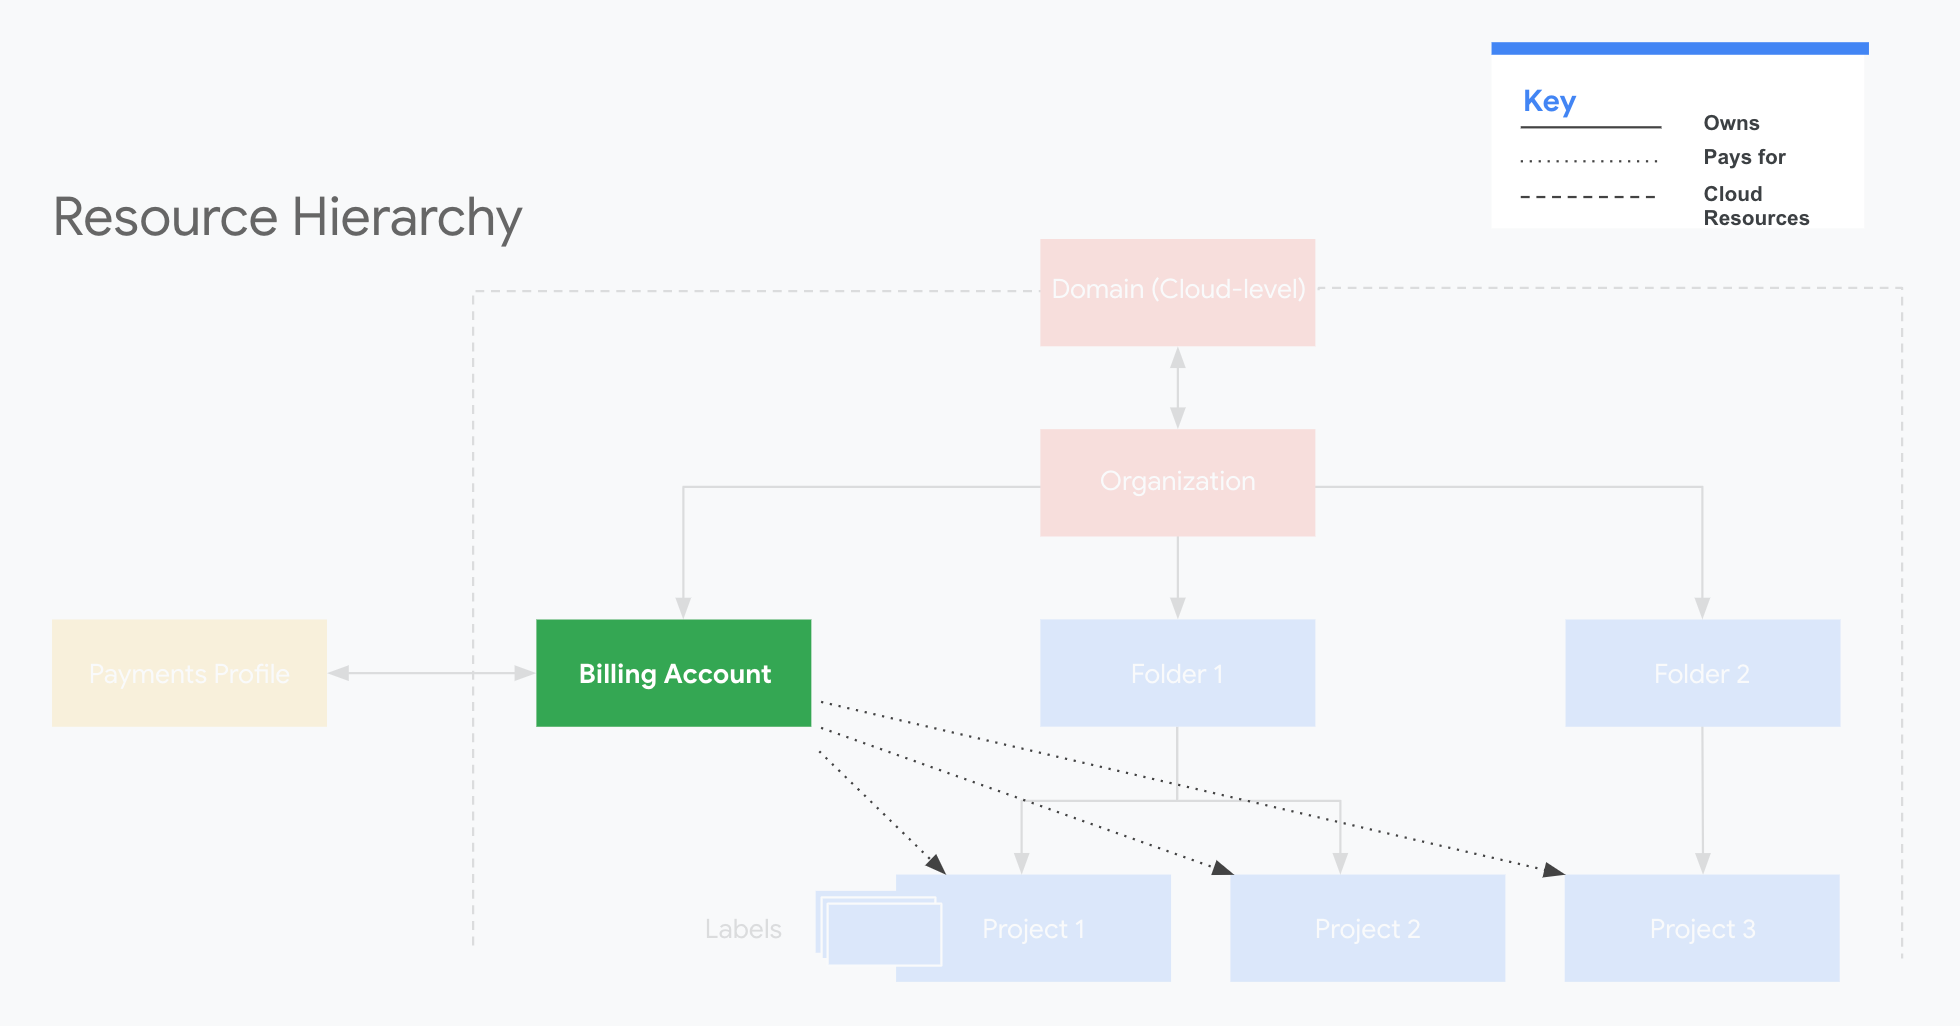 Cloud Billing Accounts in the Resource Hierarchy